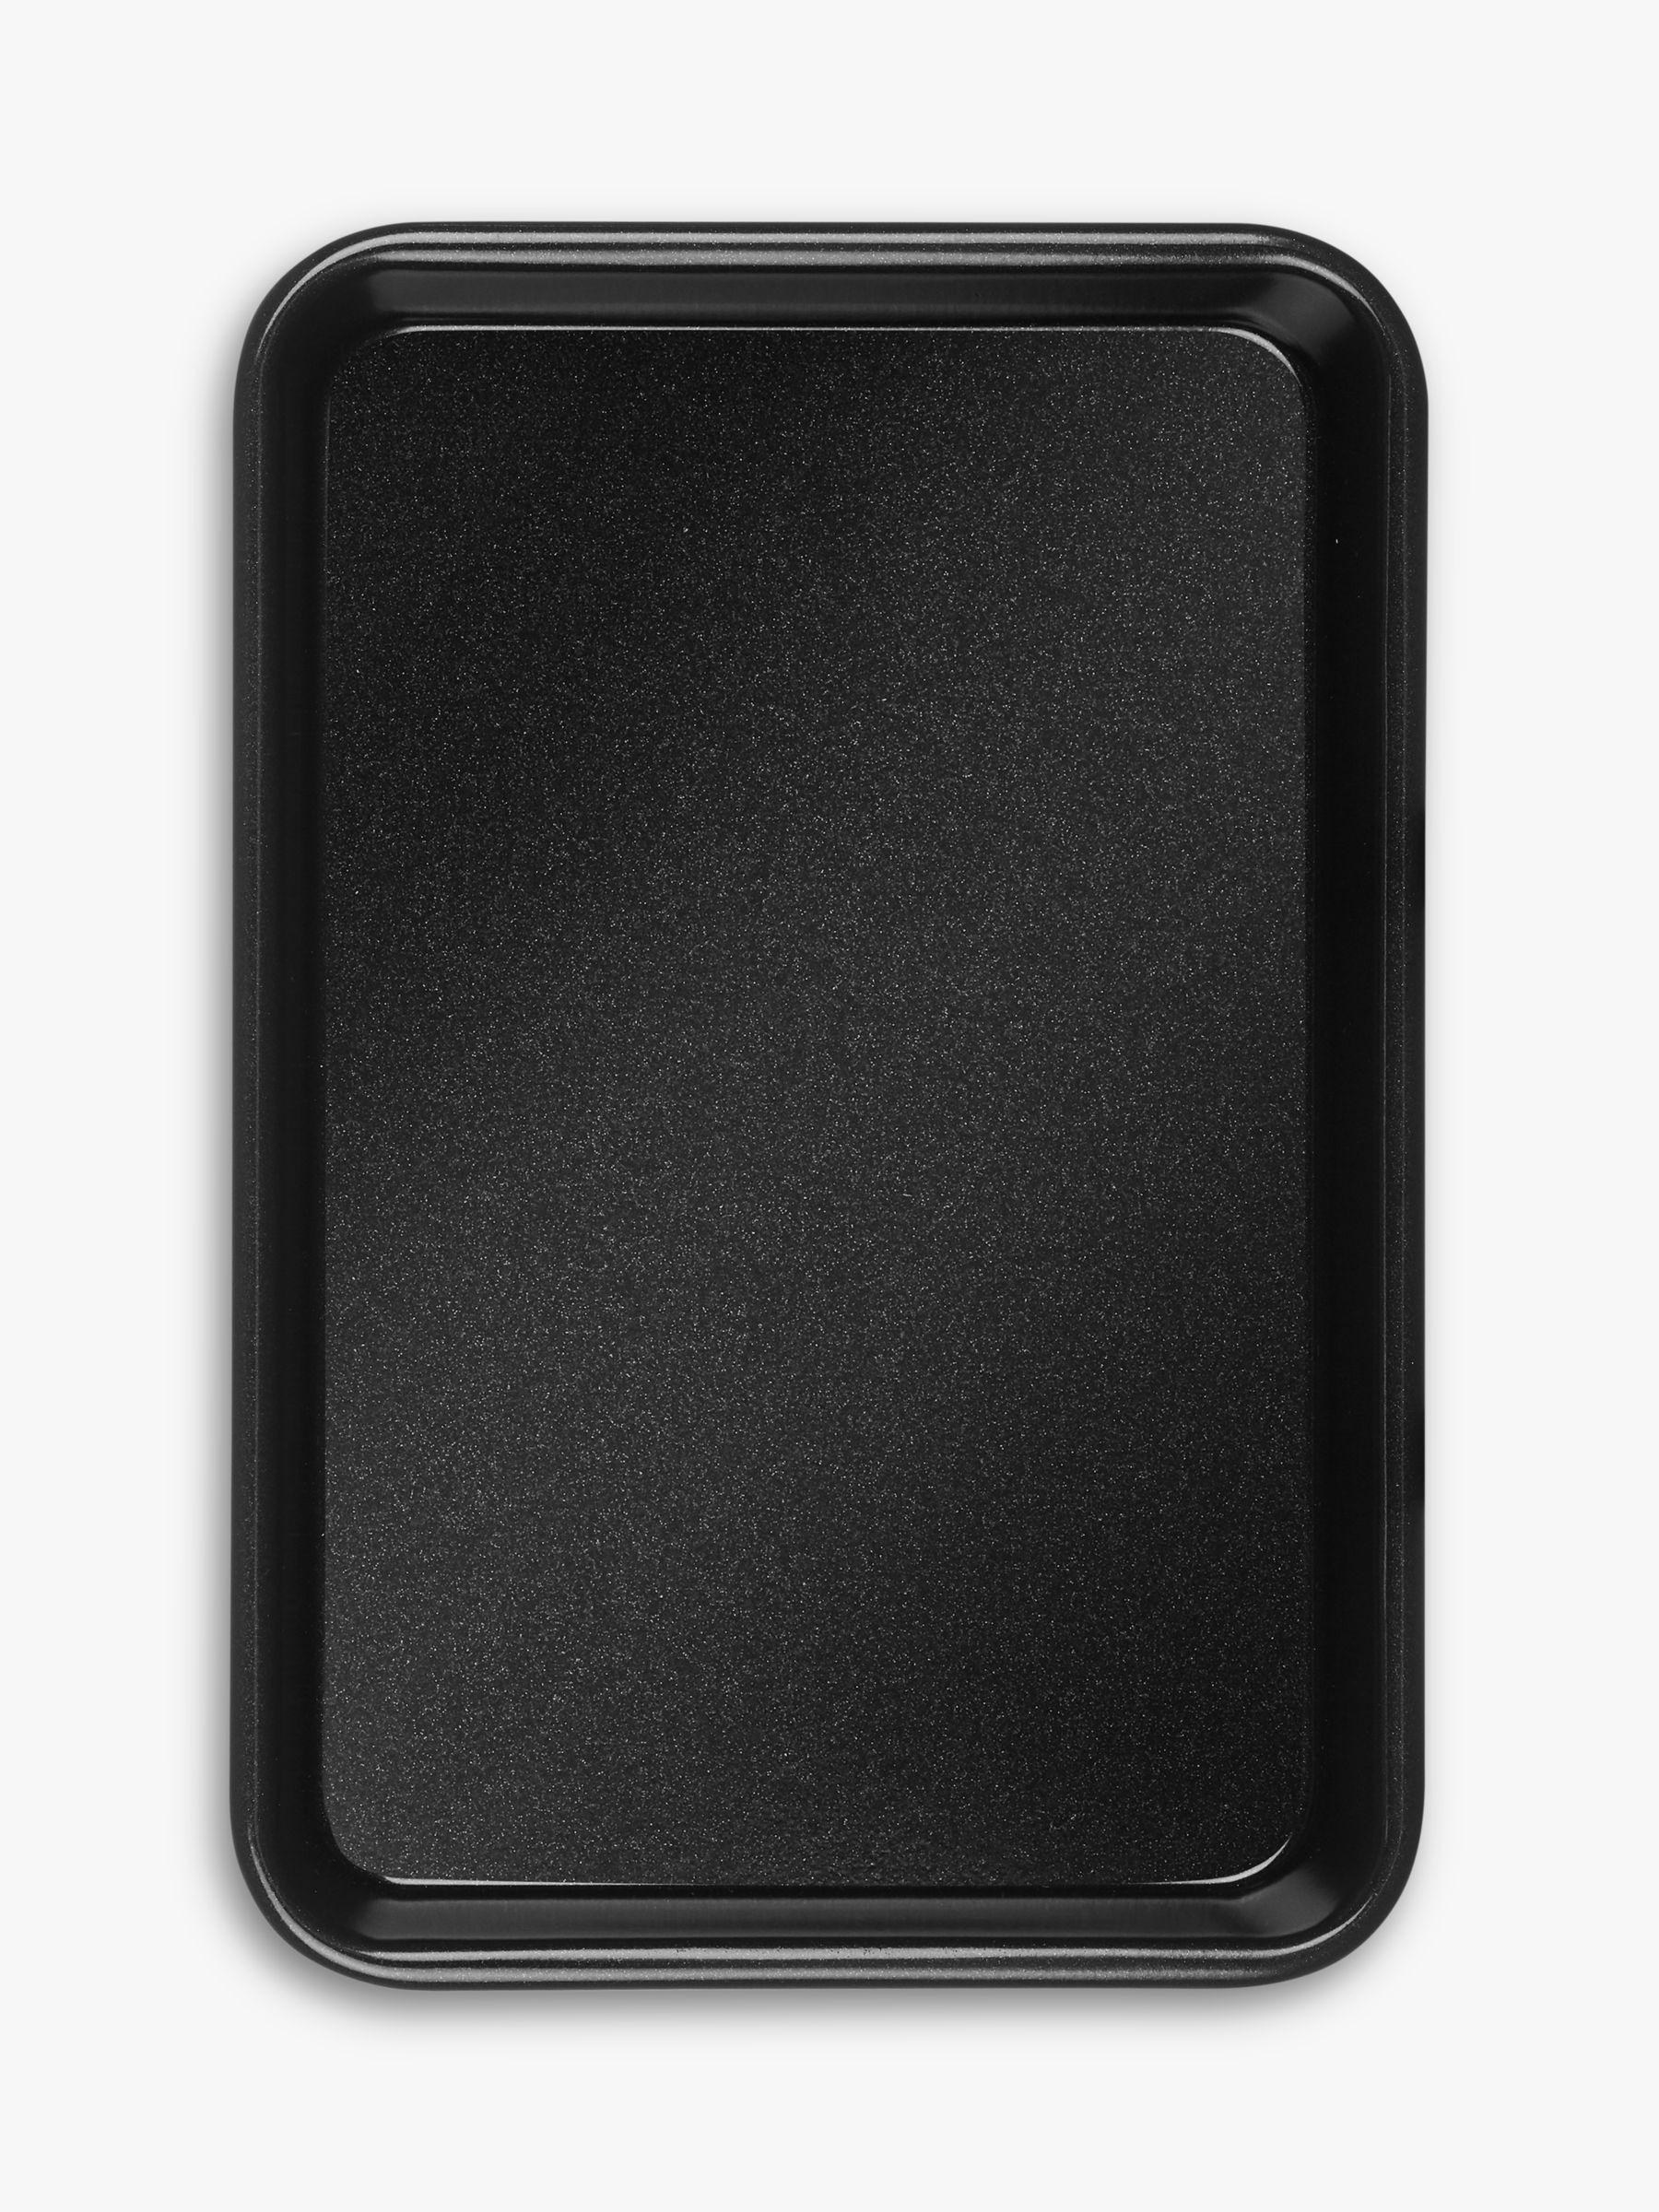 John Lewis & Partners Professional Non-Stick 'Try Me' Oven Trays, Set of 2